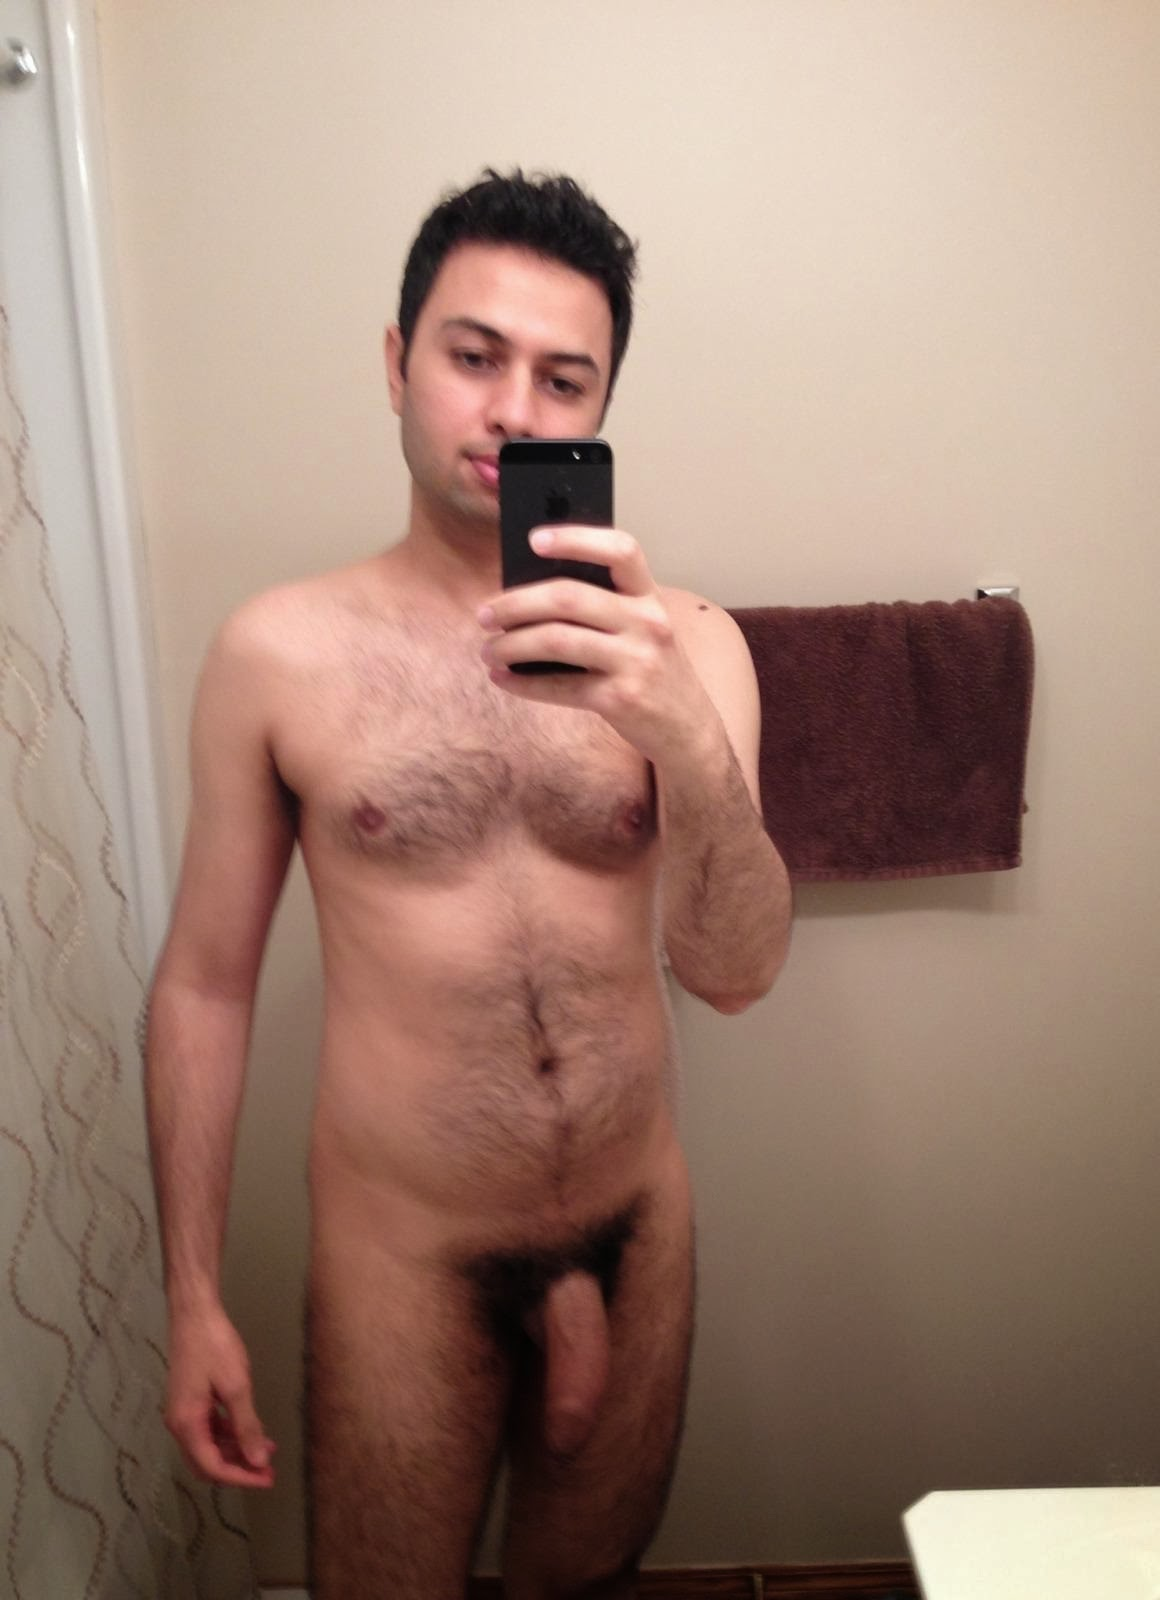 Male Self Nudes